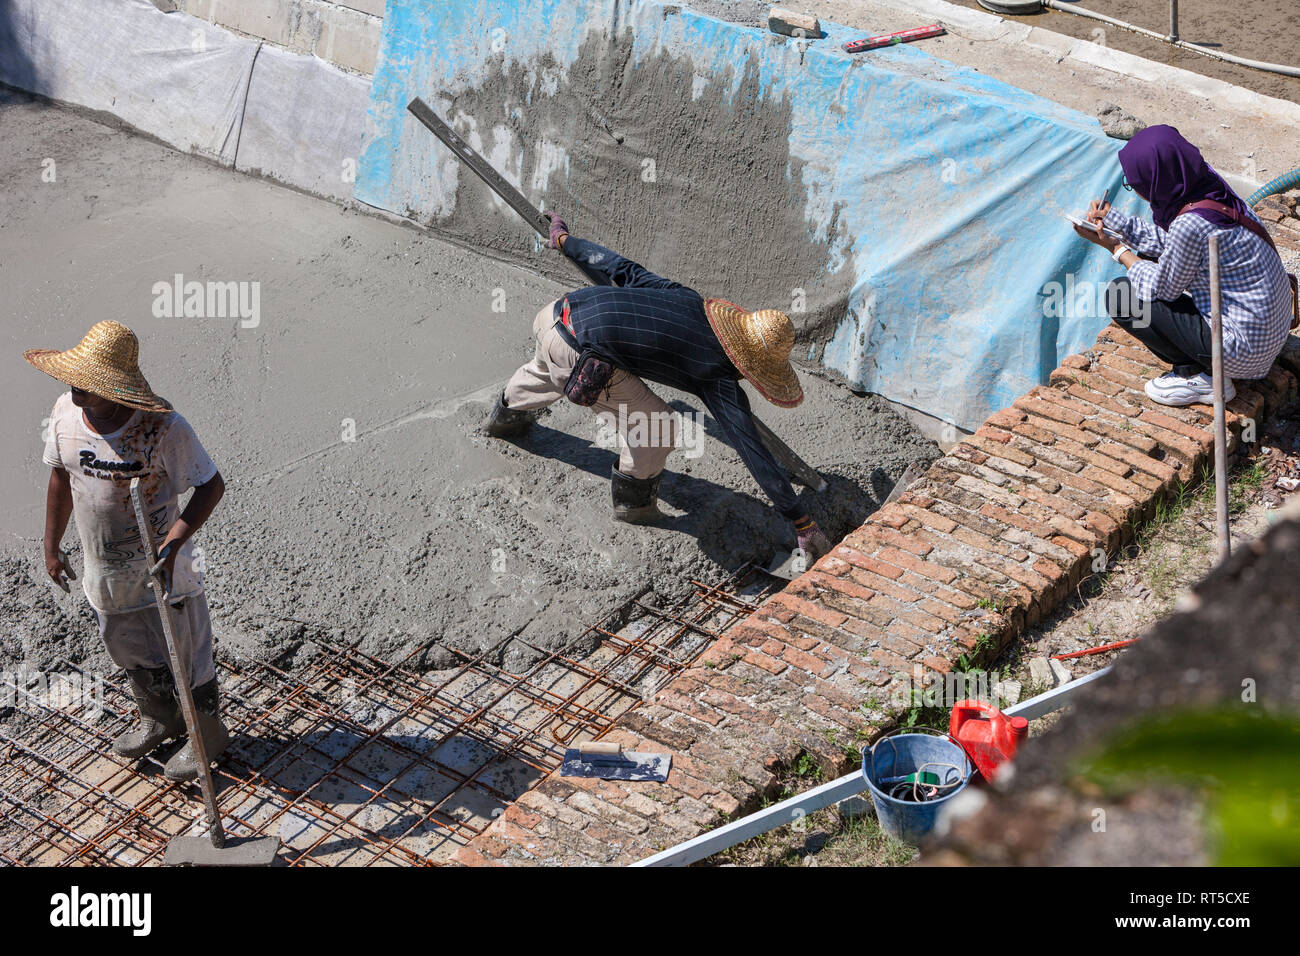 Young Malaysian Woman Supervising Laborers Laying Cement Floor, Fort Cornwallis, George Town, Penang, Malaysia - Stock Image